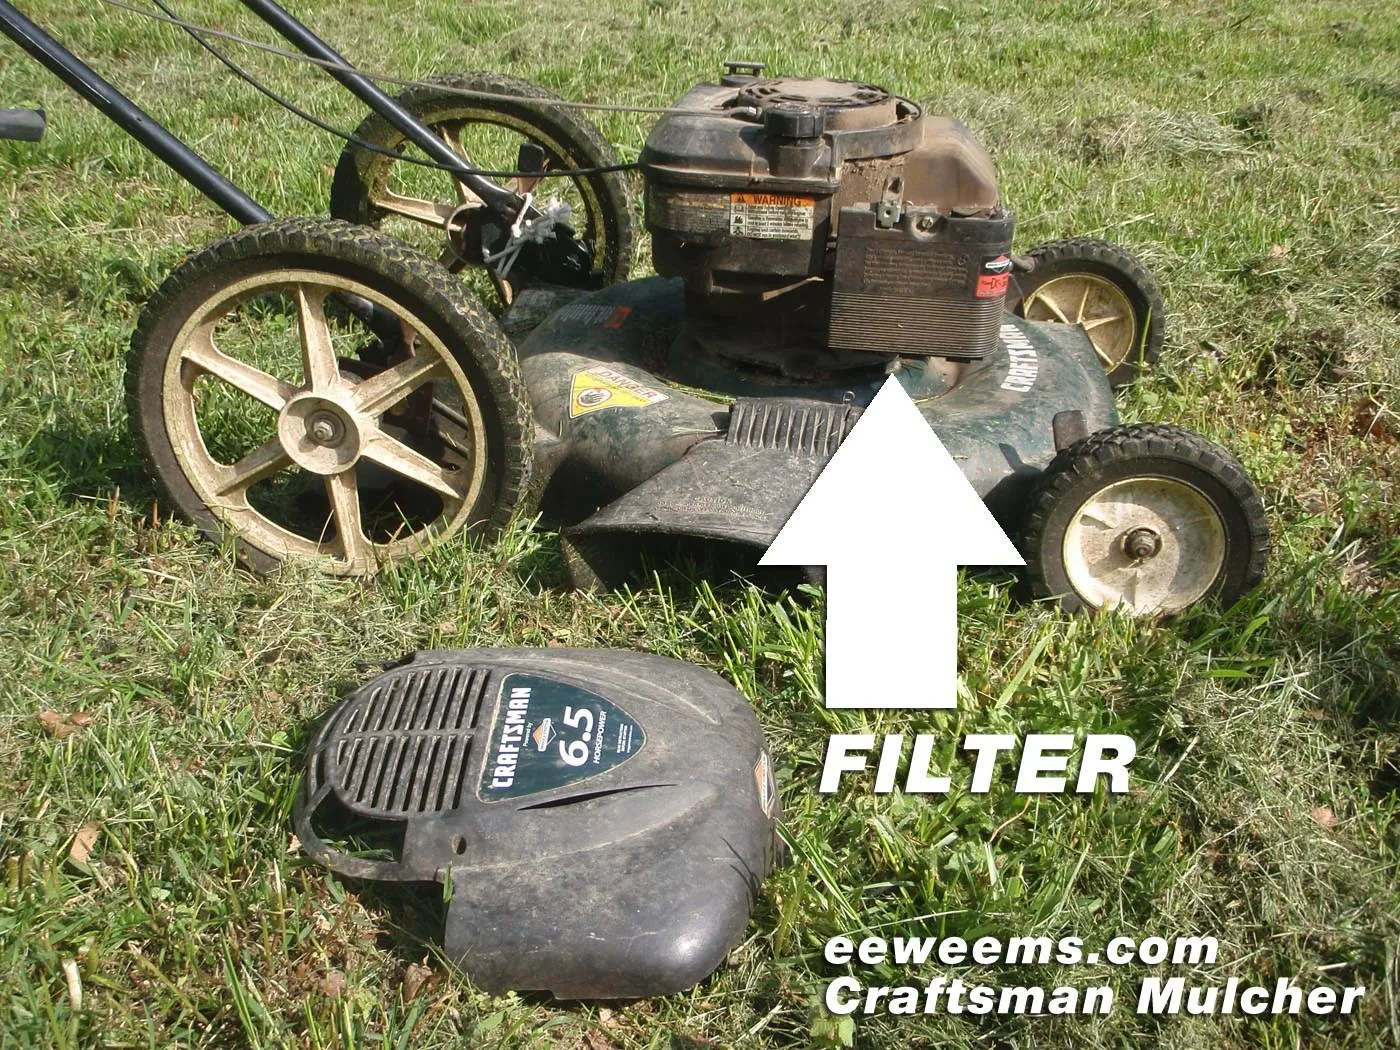 hight resolution of craftsman mower mulcher 22 air filter